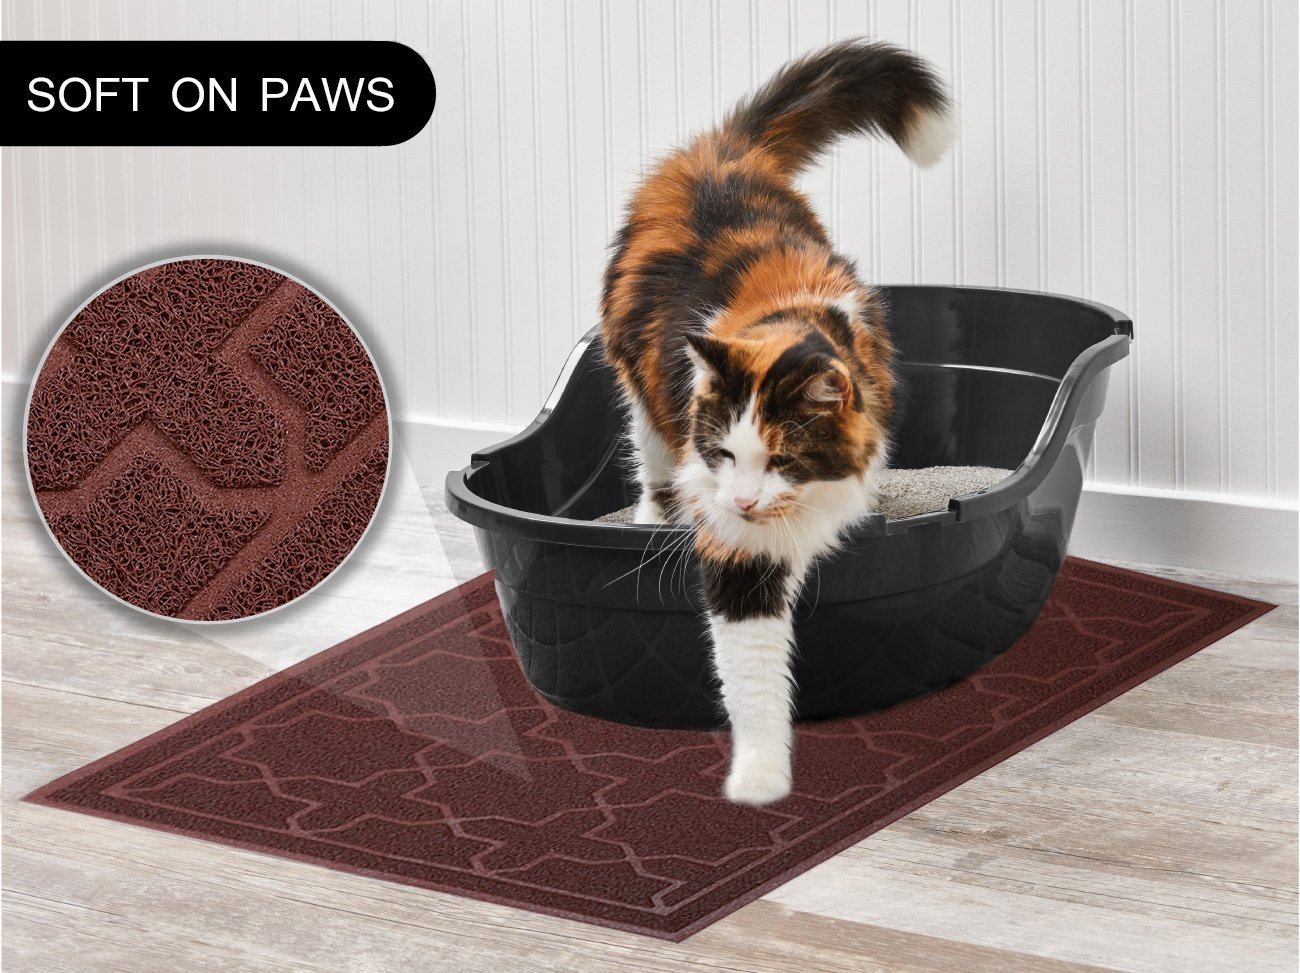 Cat Litter Mat Dog Bowl Mat for Litter Box Waterproof PVC Material for Scatter Control Non-Slip Absorbent Pet Food Mat for Cats or Dogs